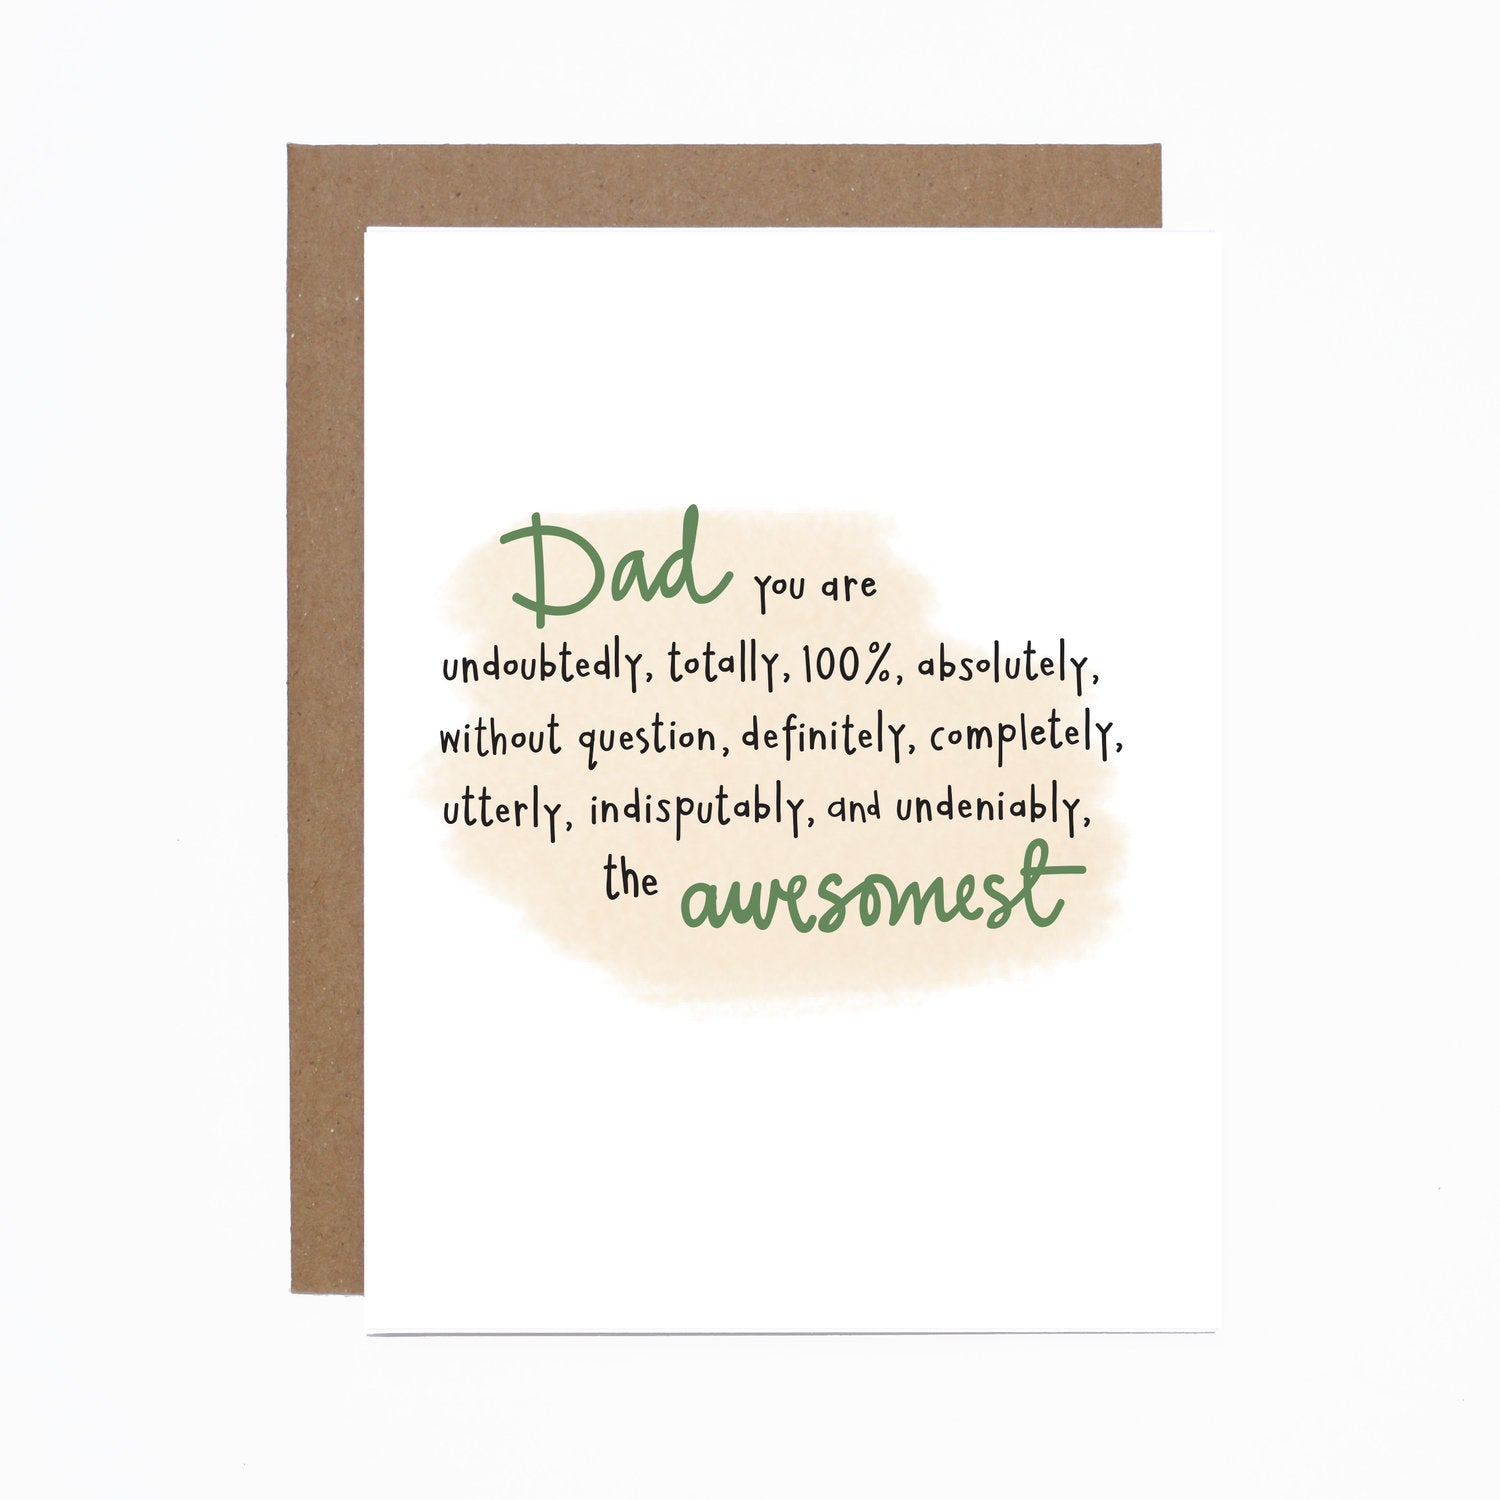 Father's Day (awesomest) card